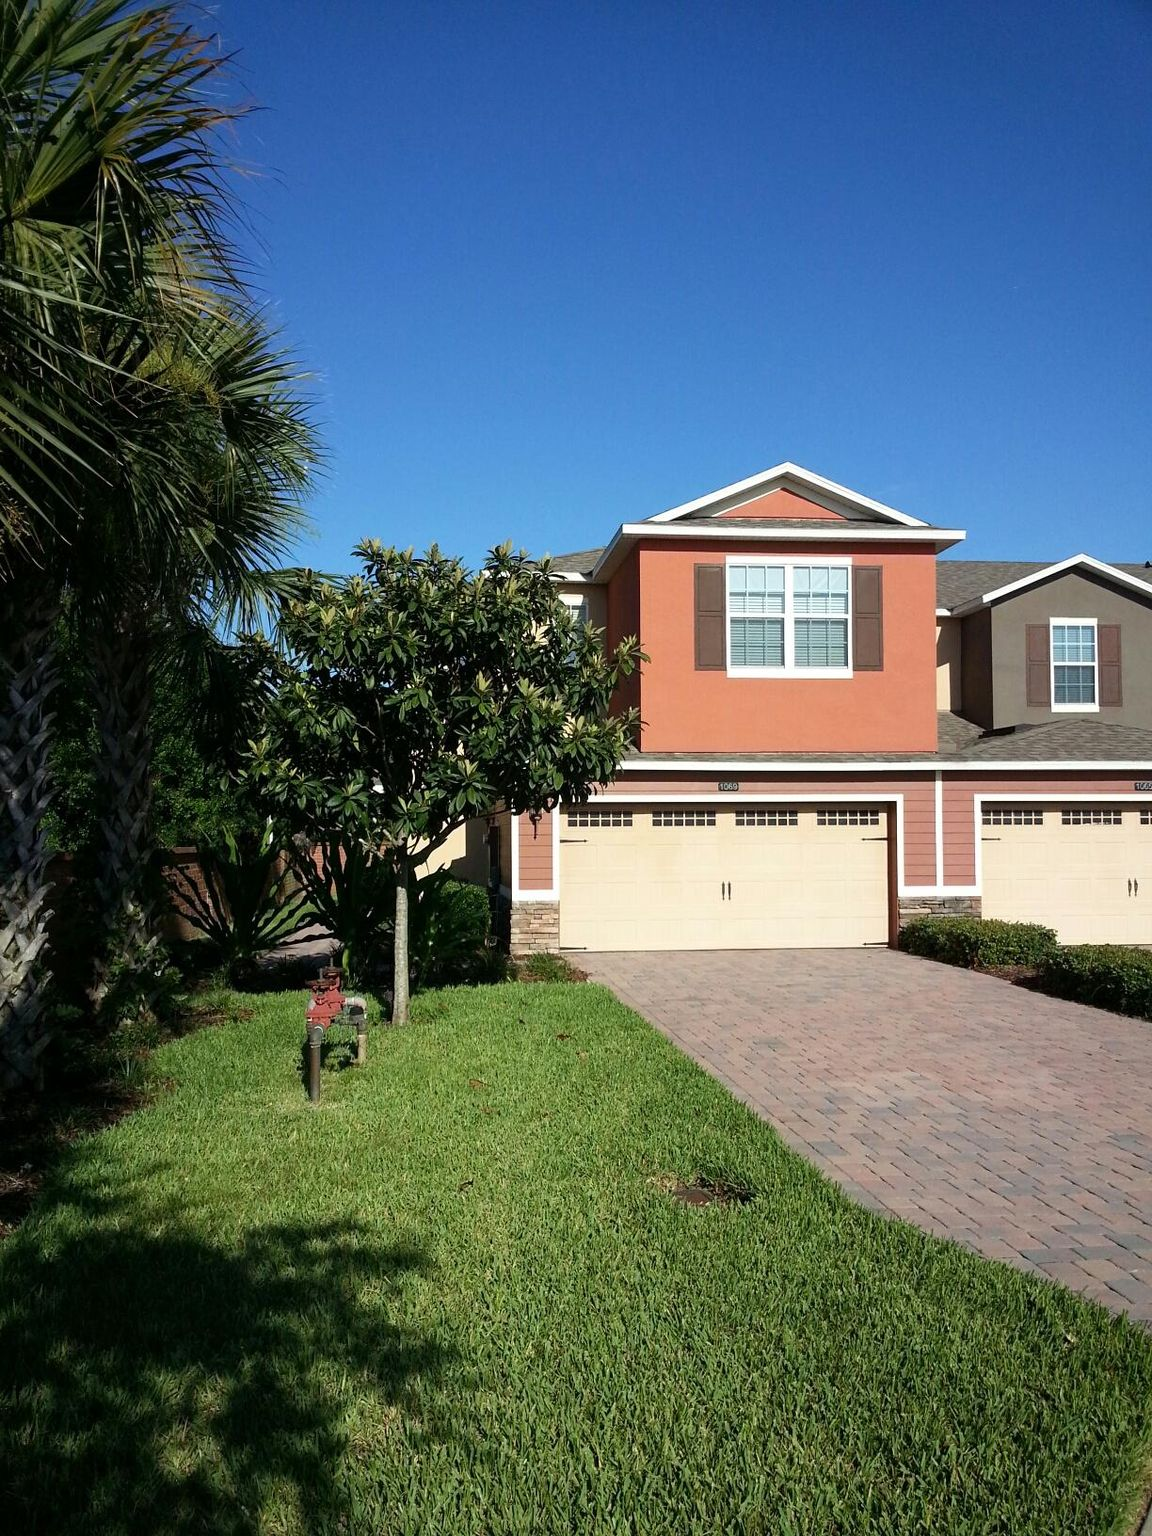 1069 priory cir winter garden fl 34787 recently sold trulia